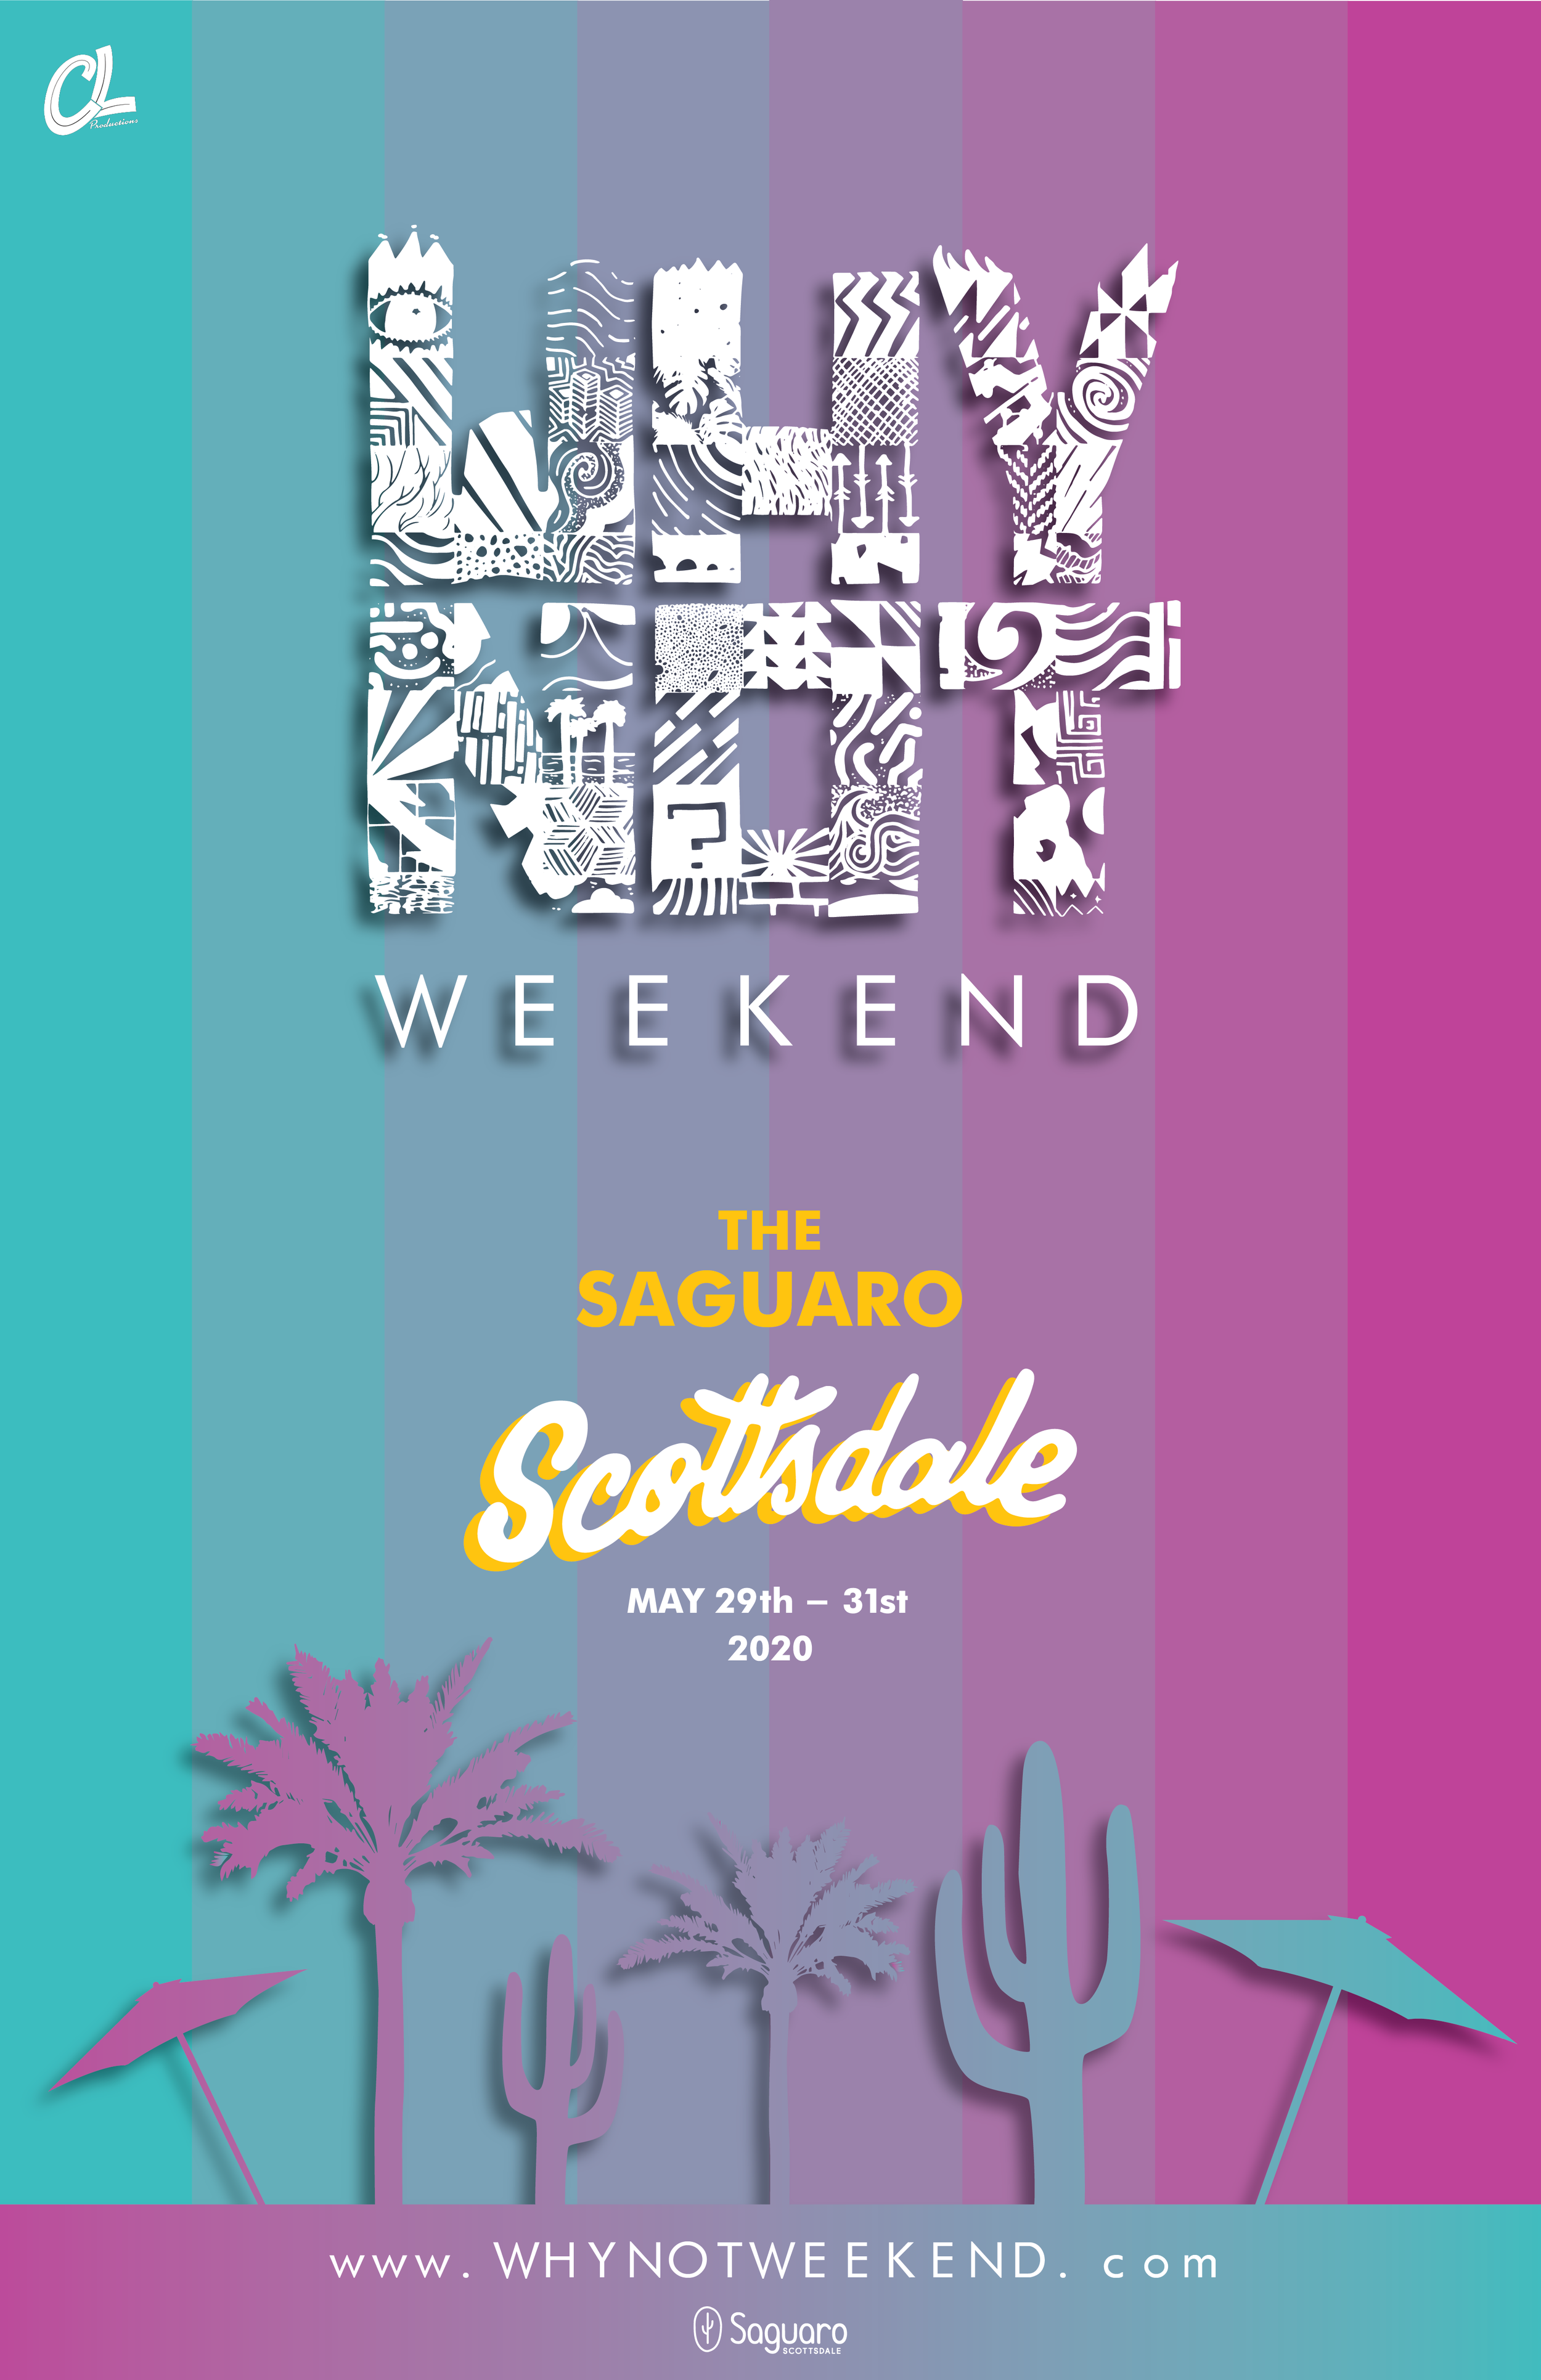 WHY NOT Weekend Concert Event Poster